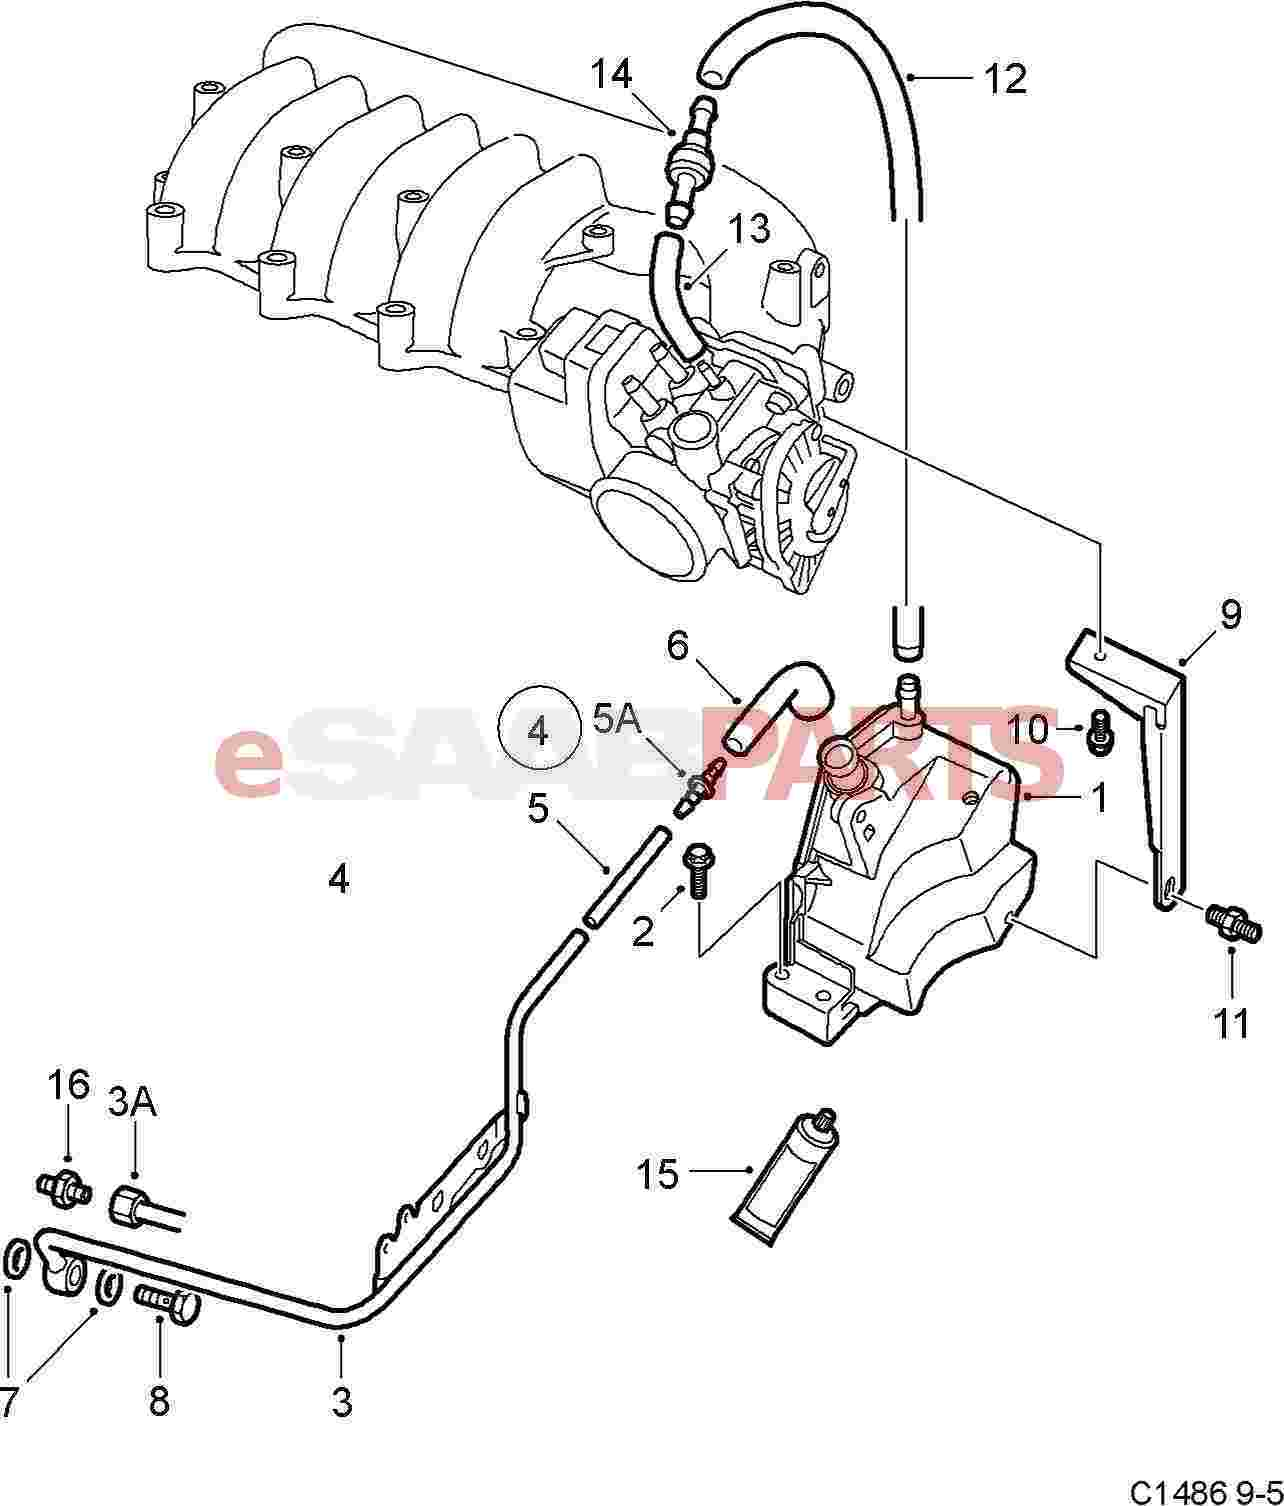 esaabparts com saab 9 5 9600 u003e engine parts u003e pcv crank case rh esaabparts com Saab 2.0 Engine Diagram Saab 900 SE Engine Diagram